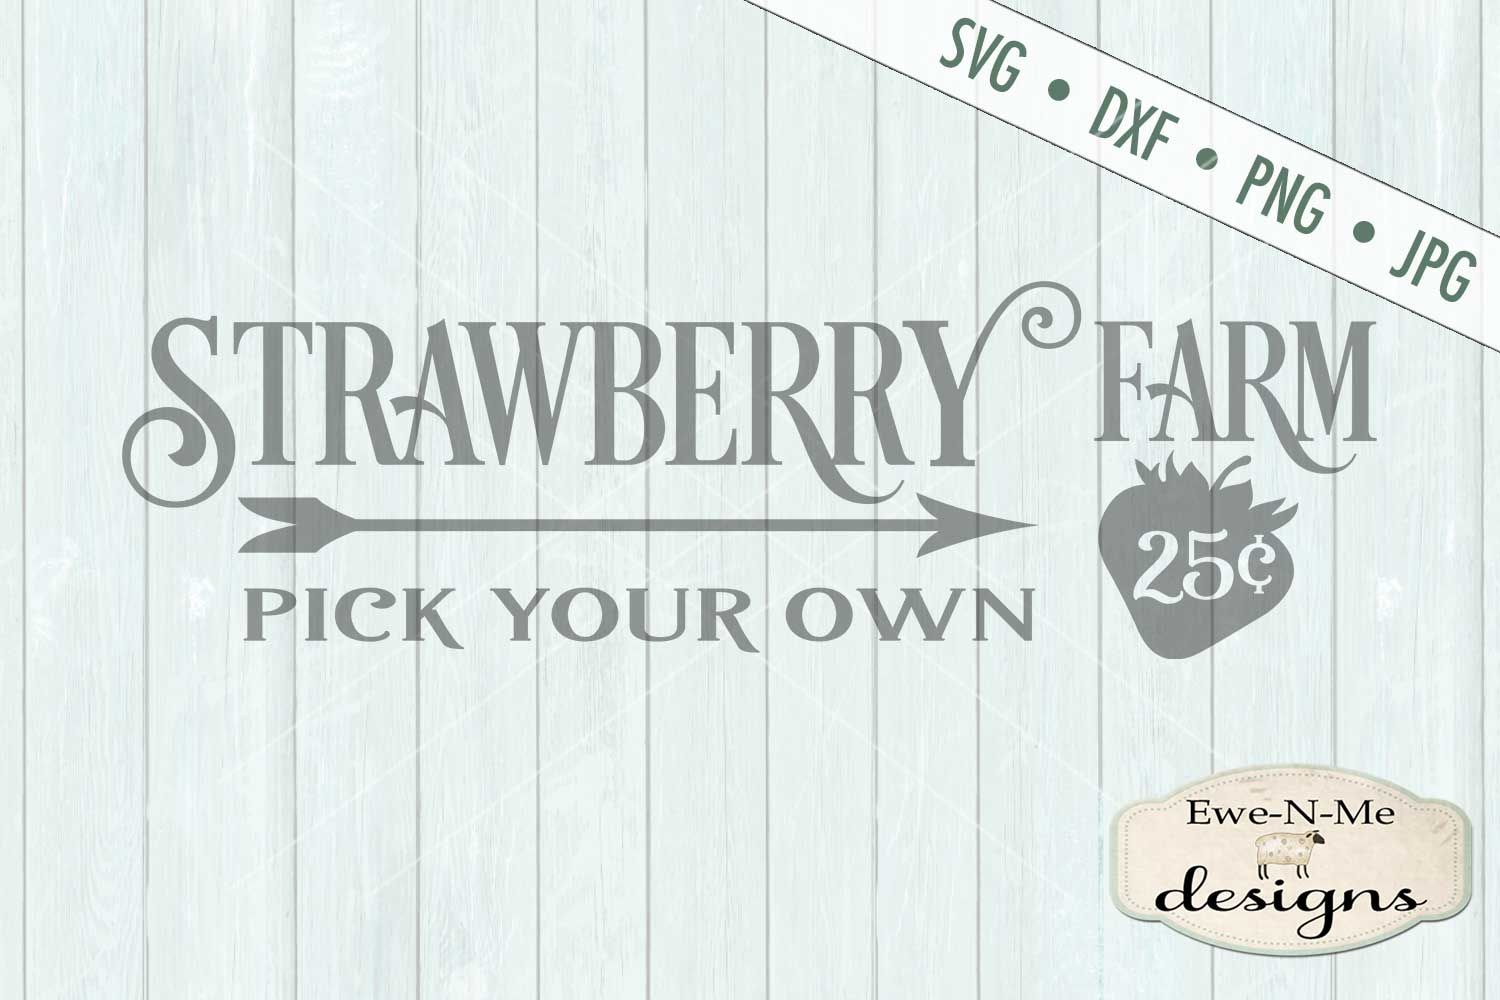 Strawberry Farm - Pick Your Own - Farm Rustic - SVG DXF File example image 2